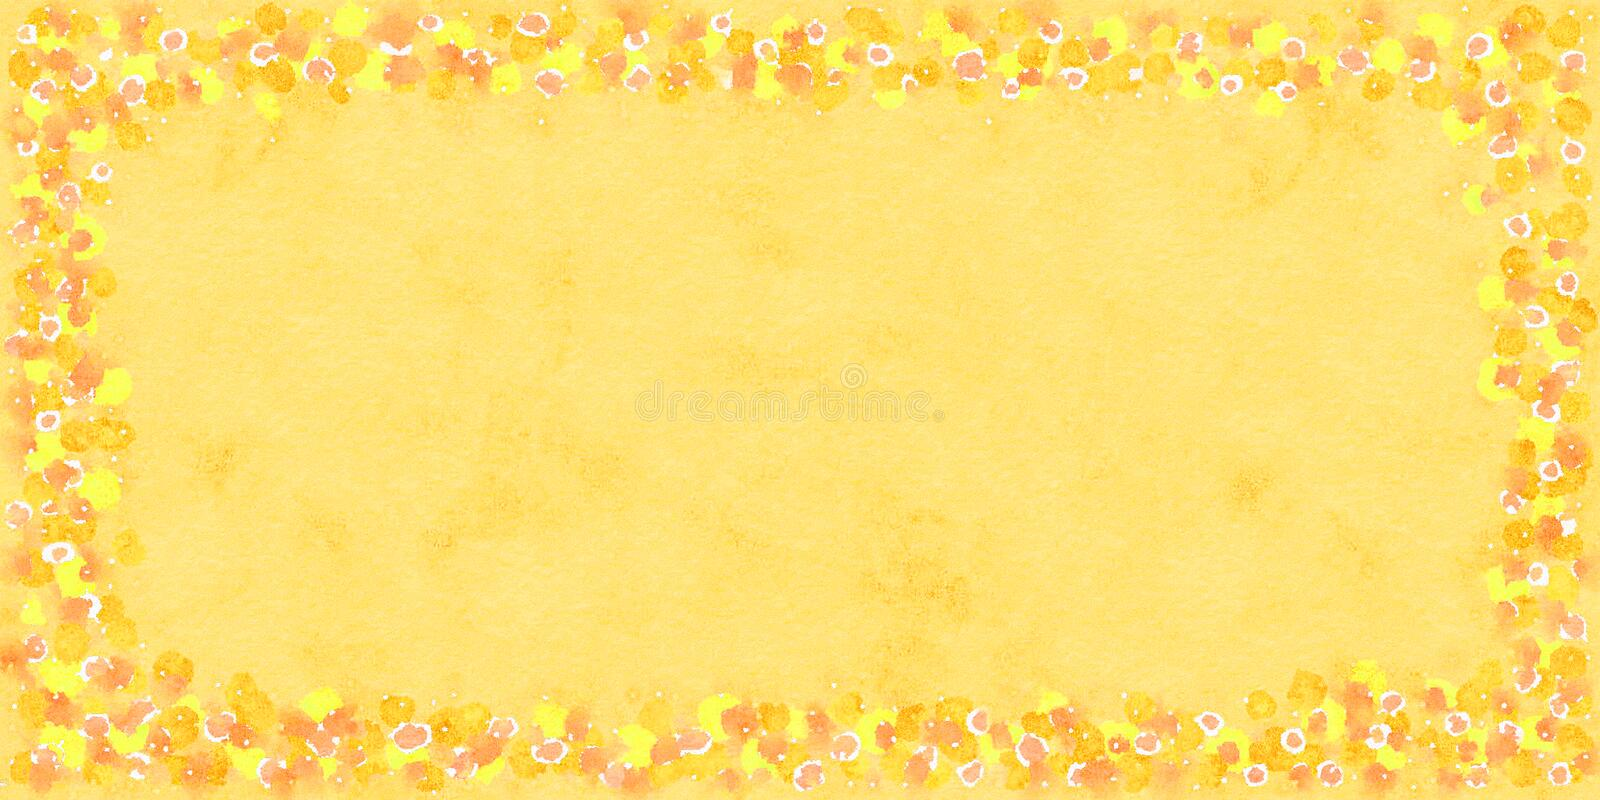 Watercolor frame of orange, yellow and white round elements. vector illustration